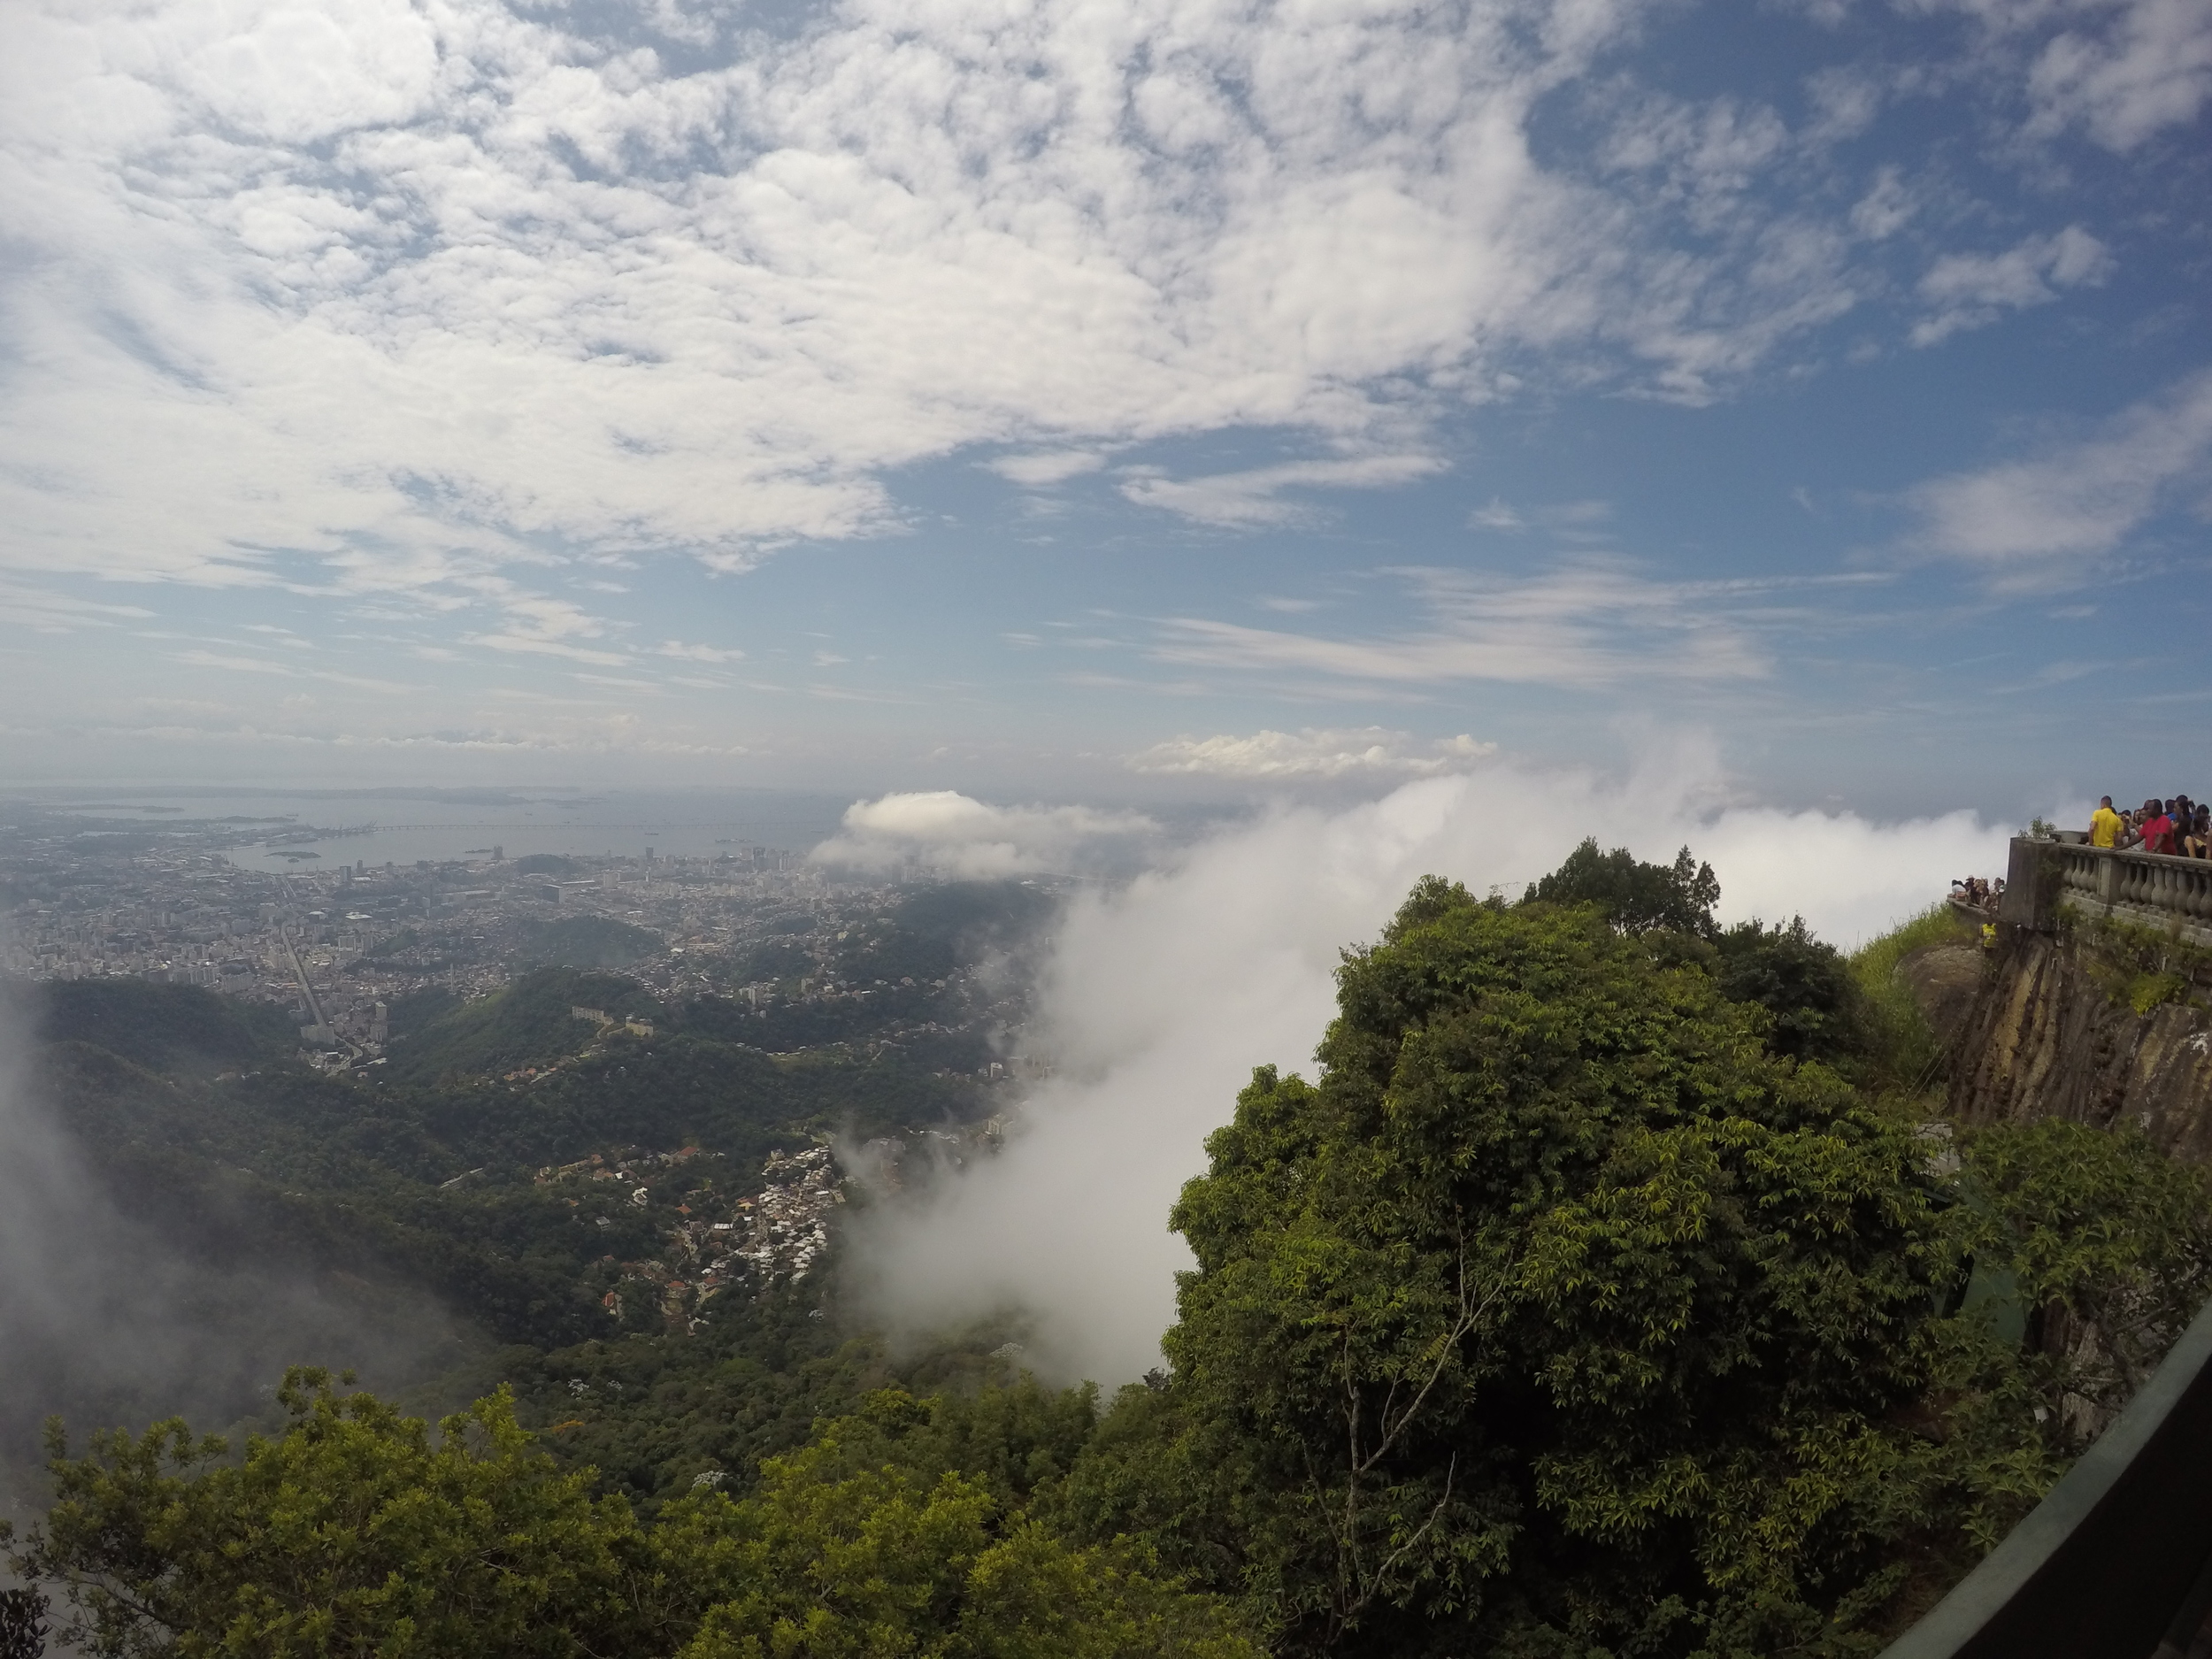 The view of Rio de Janeiro from the top of Corcovado Mountain and Christ Redeemer